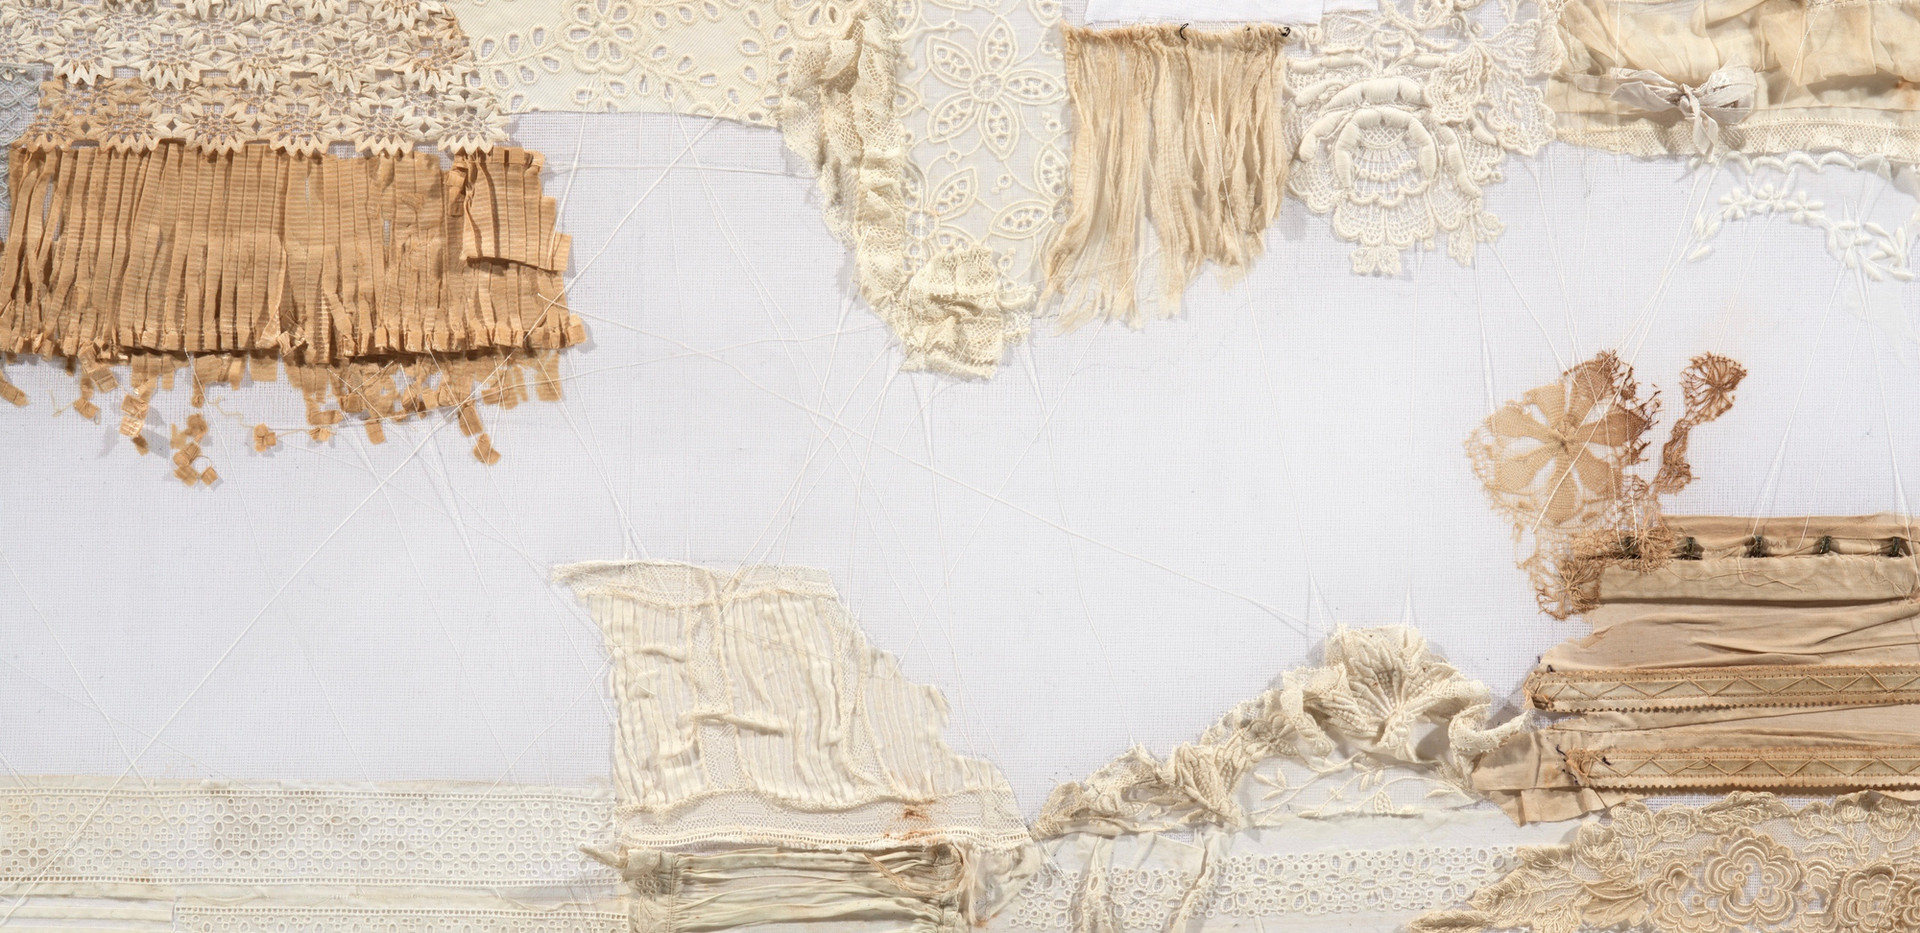 The Threads That Bind A Divided Nation, detail 1 Mason Dixon Line